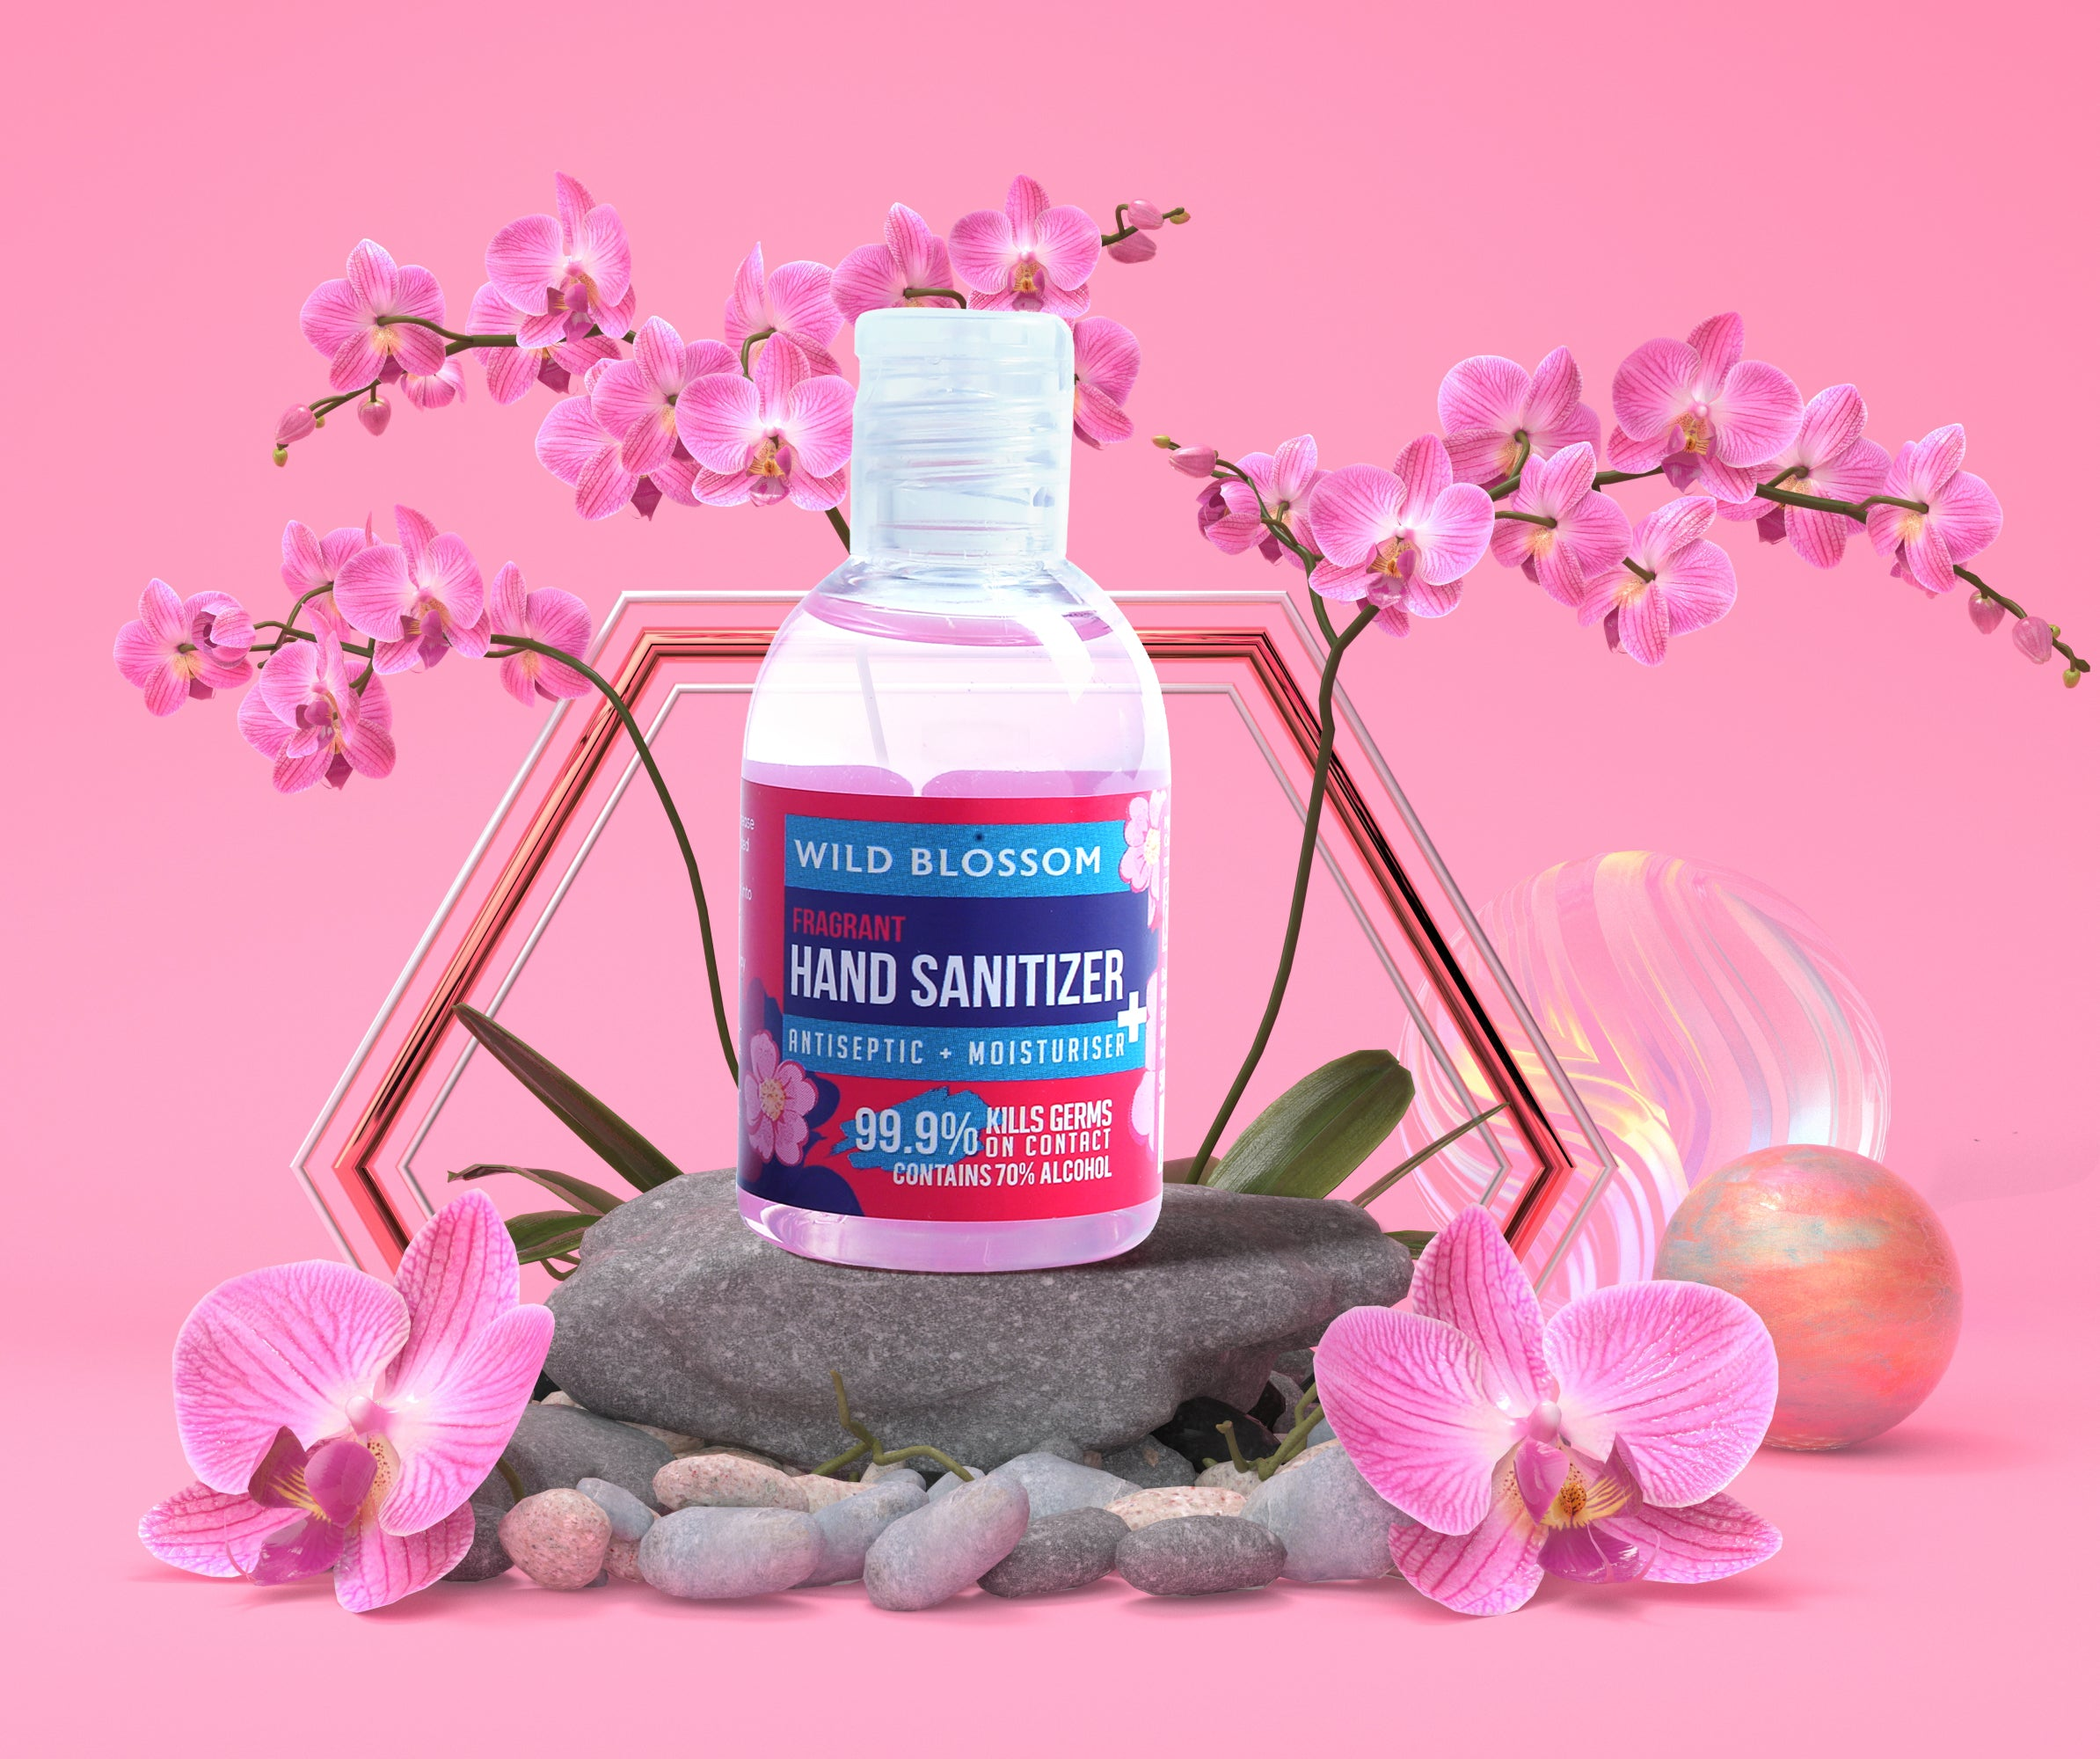 Liquid Gel Hand Sanitizer in Wild Blossom Fragrance kills 99.9% Germs, 70% Ethyl Alcohol, Pack of 10, 50 ML Each